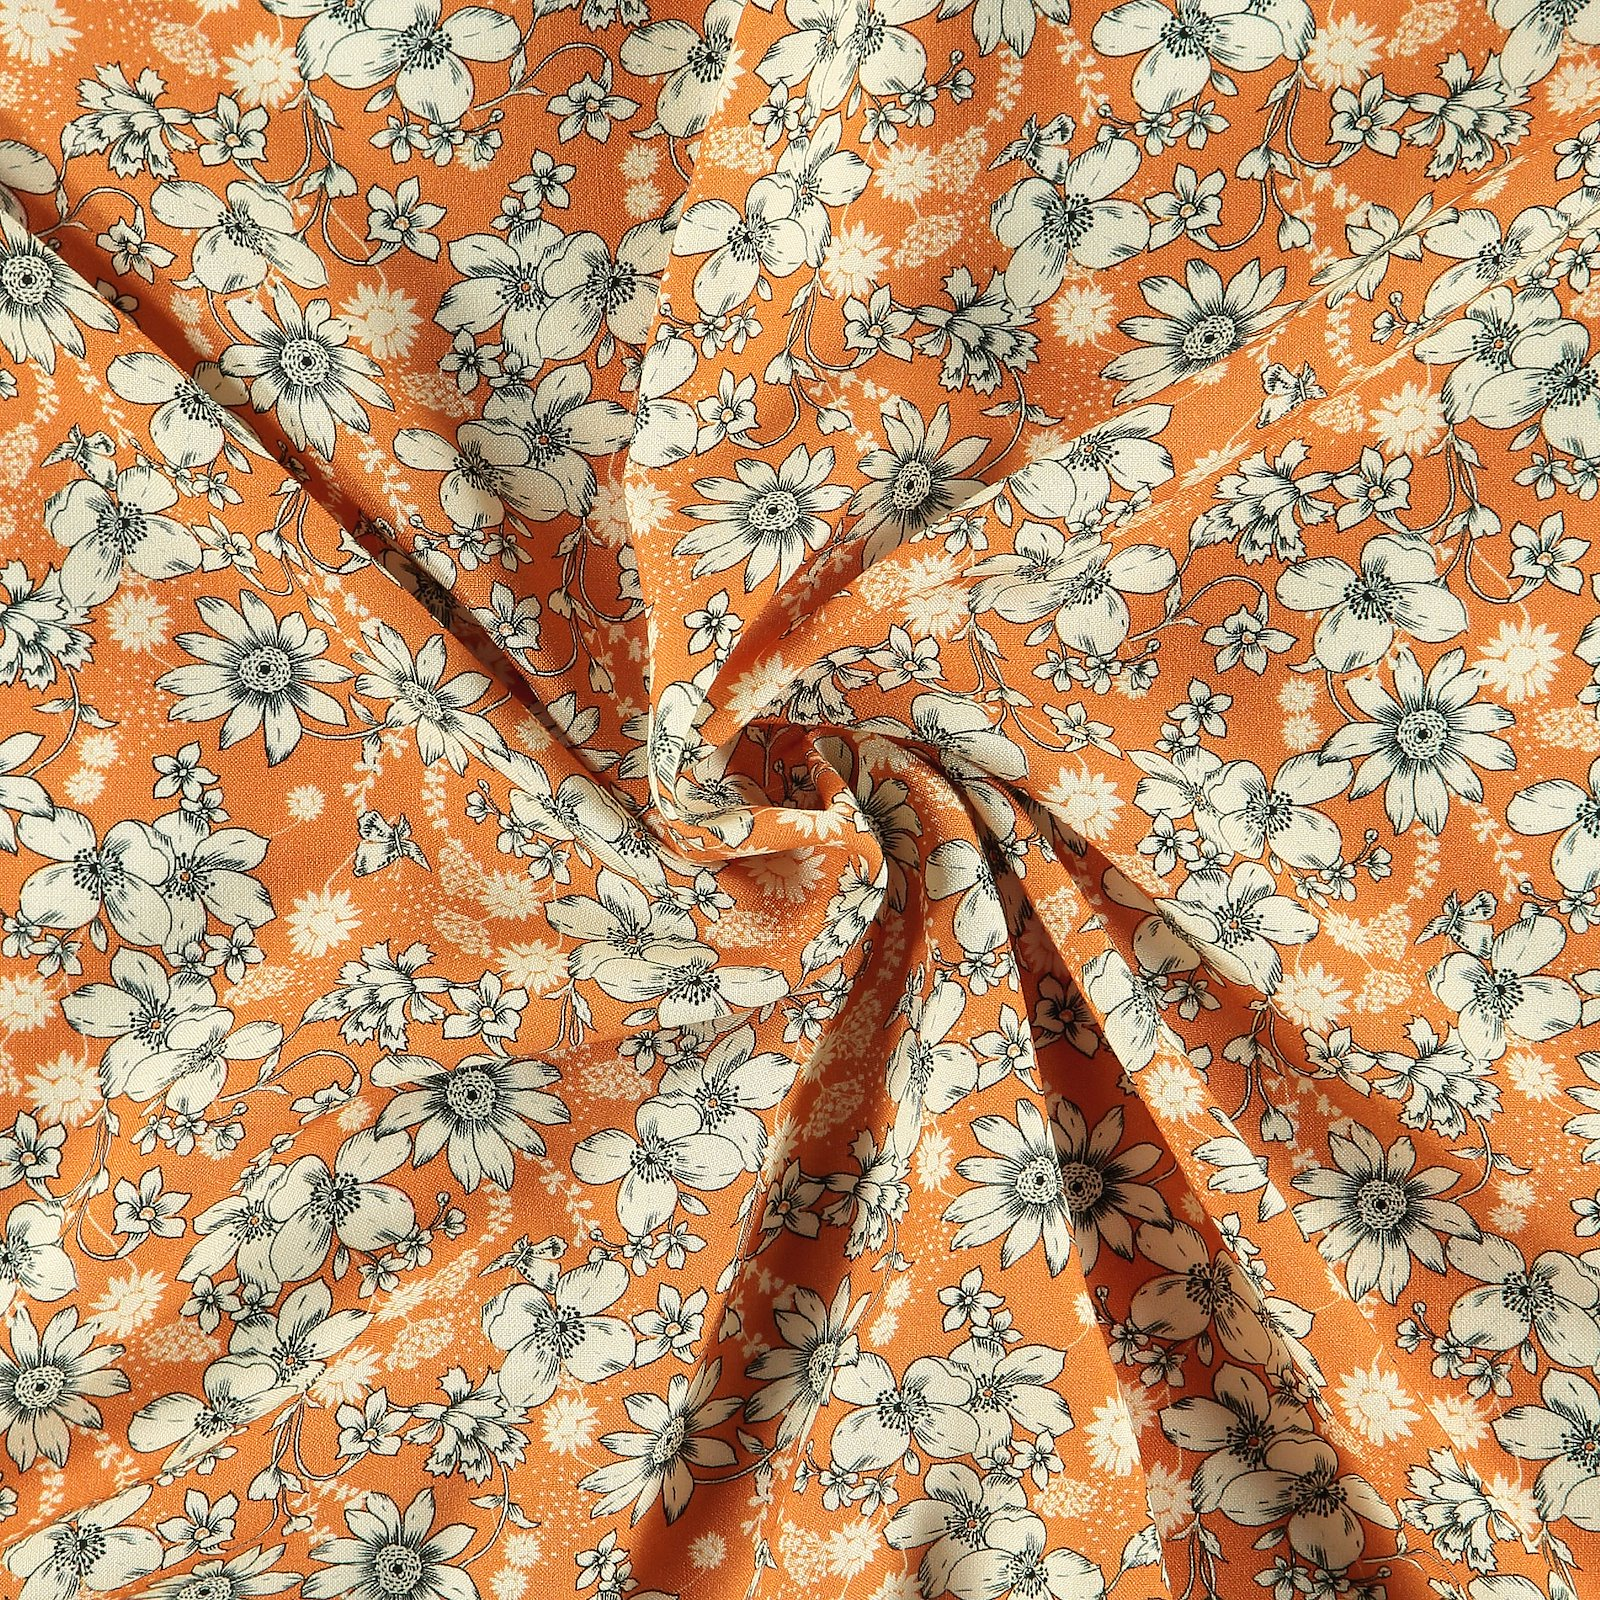 Ecovero woven viscose golden w flowers 710691_pack